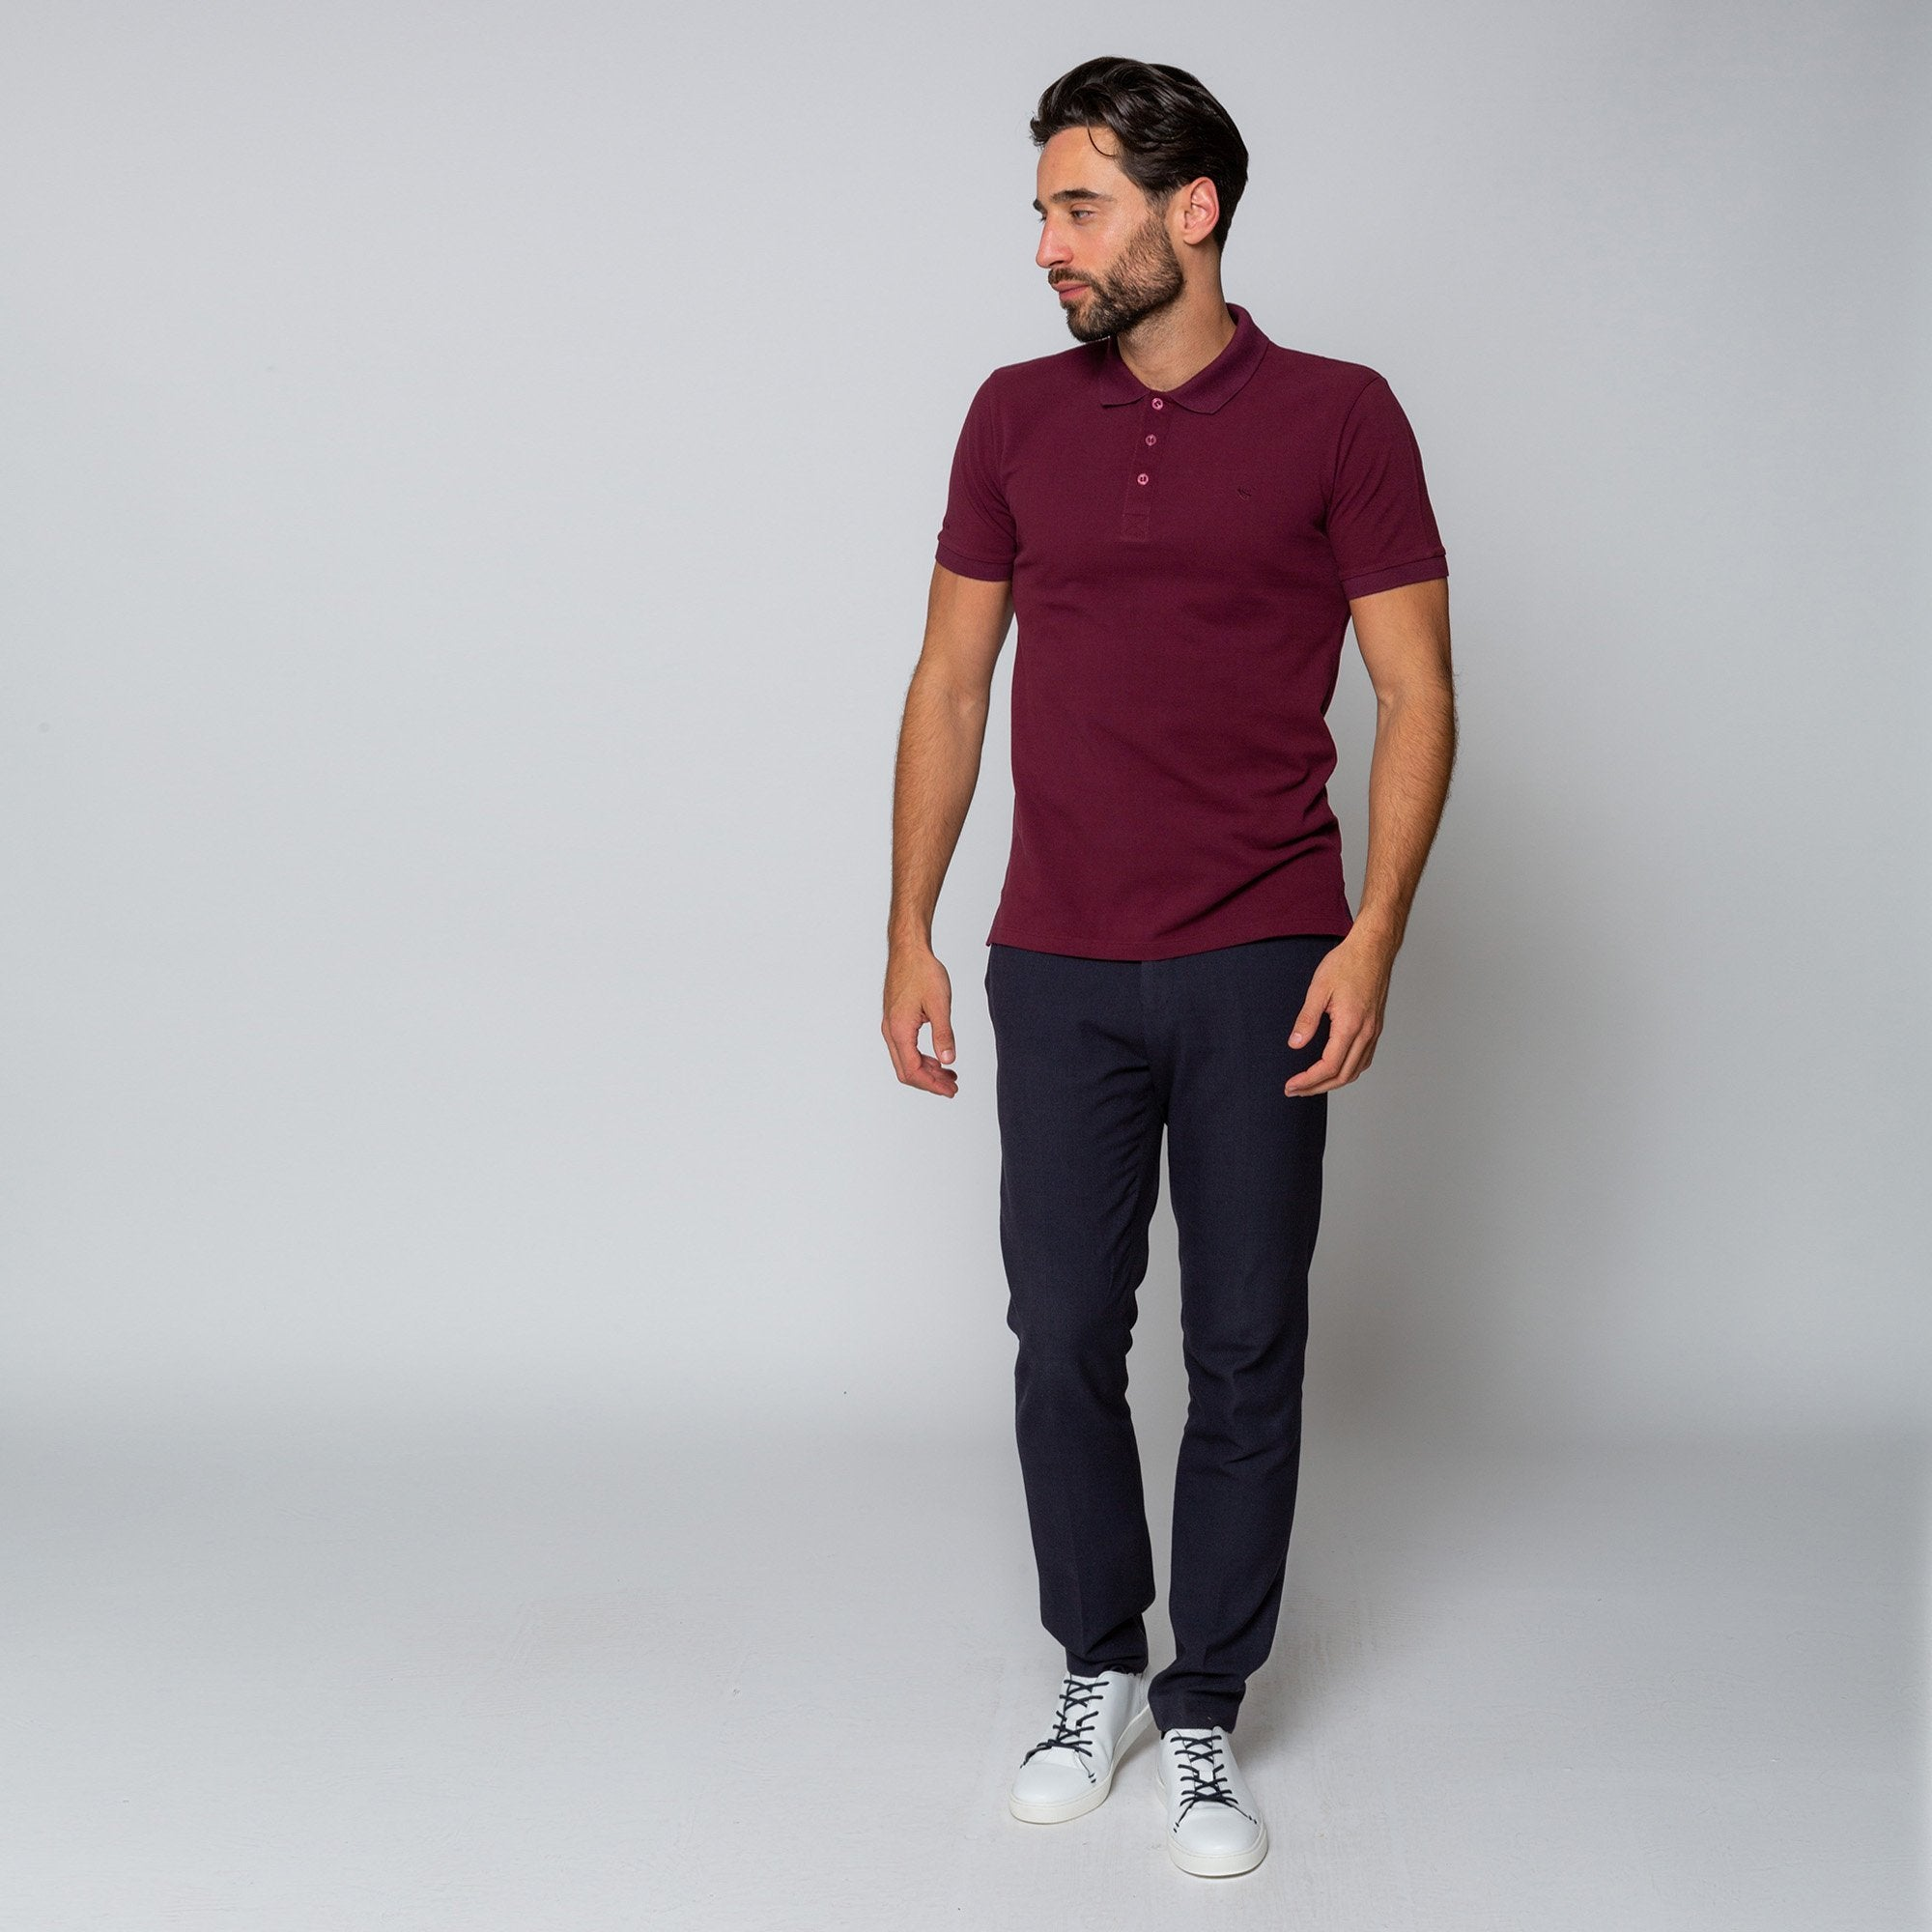 Goodwin Smith Clothing S / Maroon / Cotton Pique HEWITT MAROON